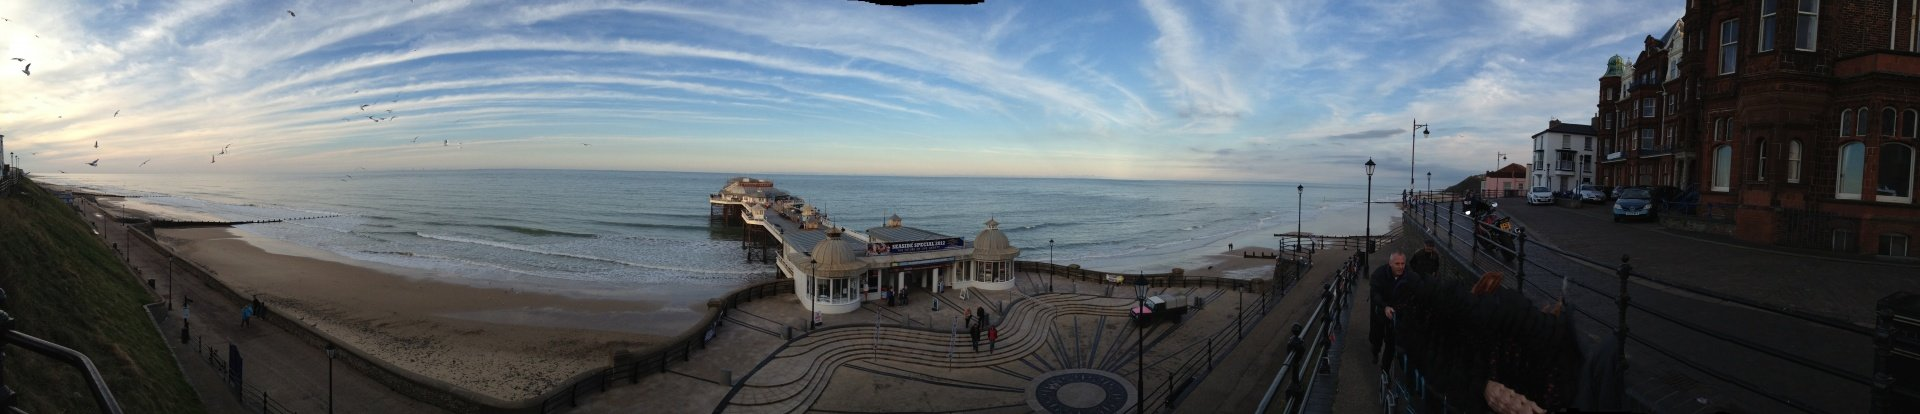 user256310's photo of Cromer